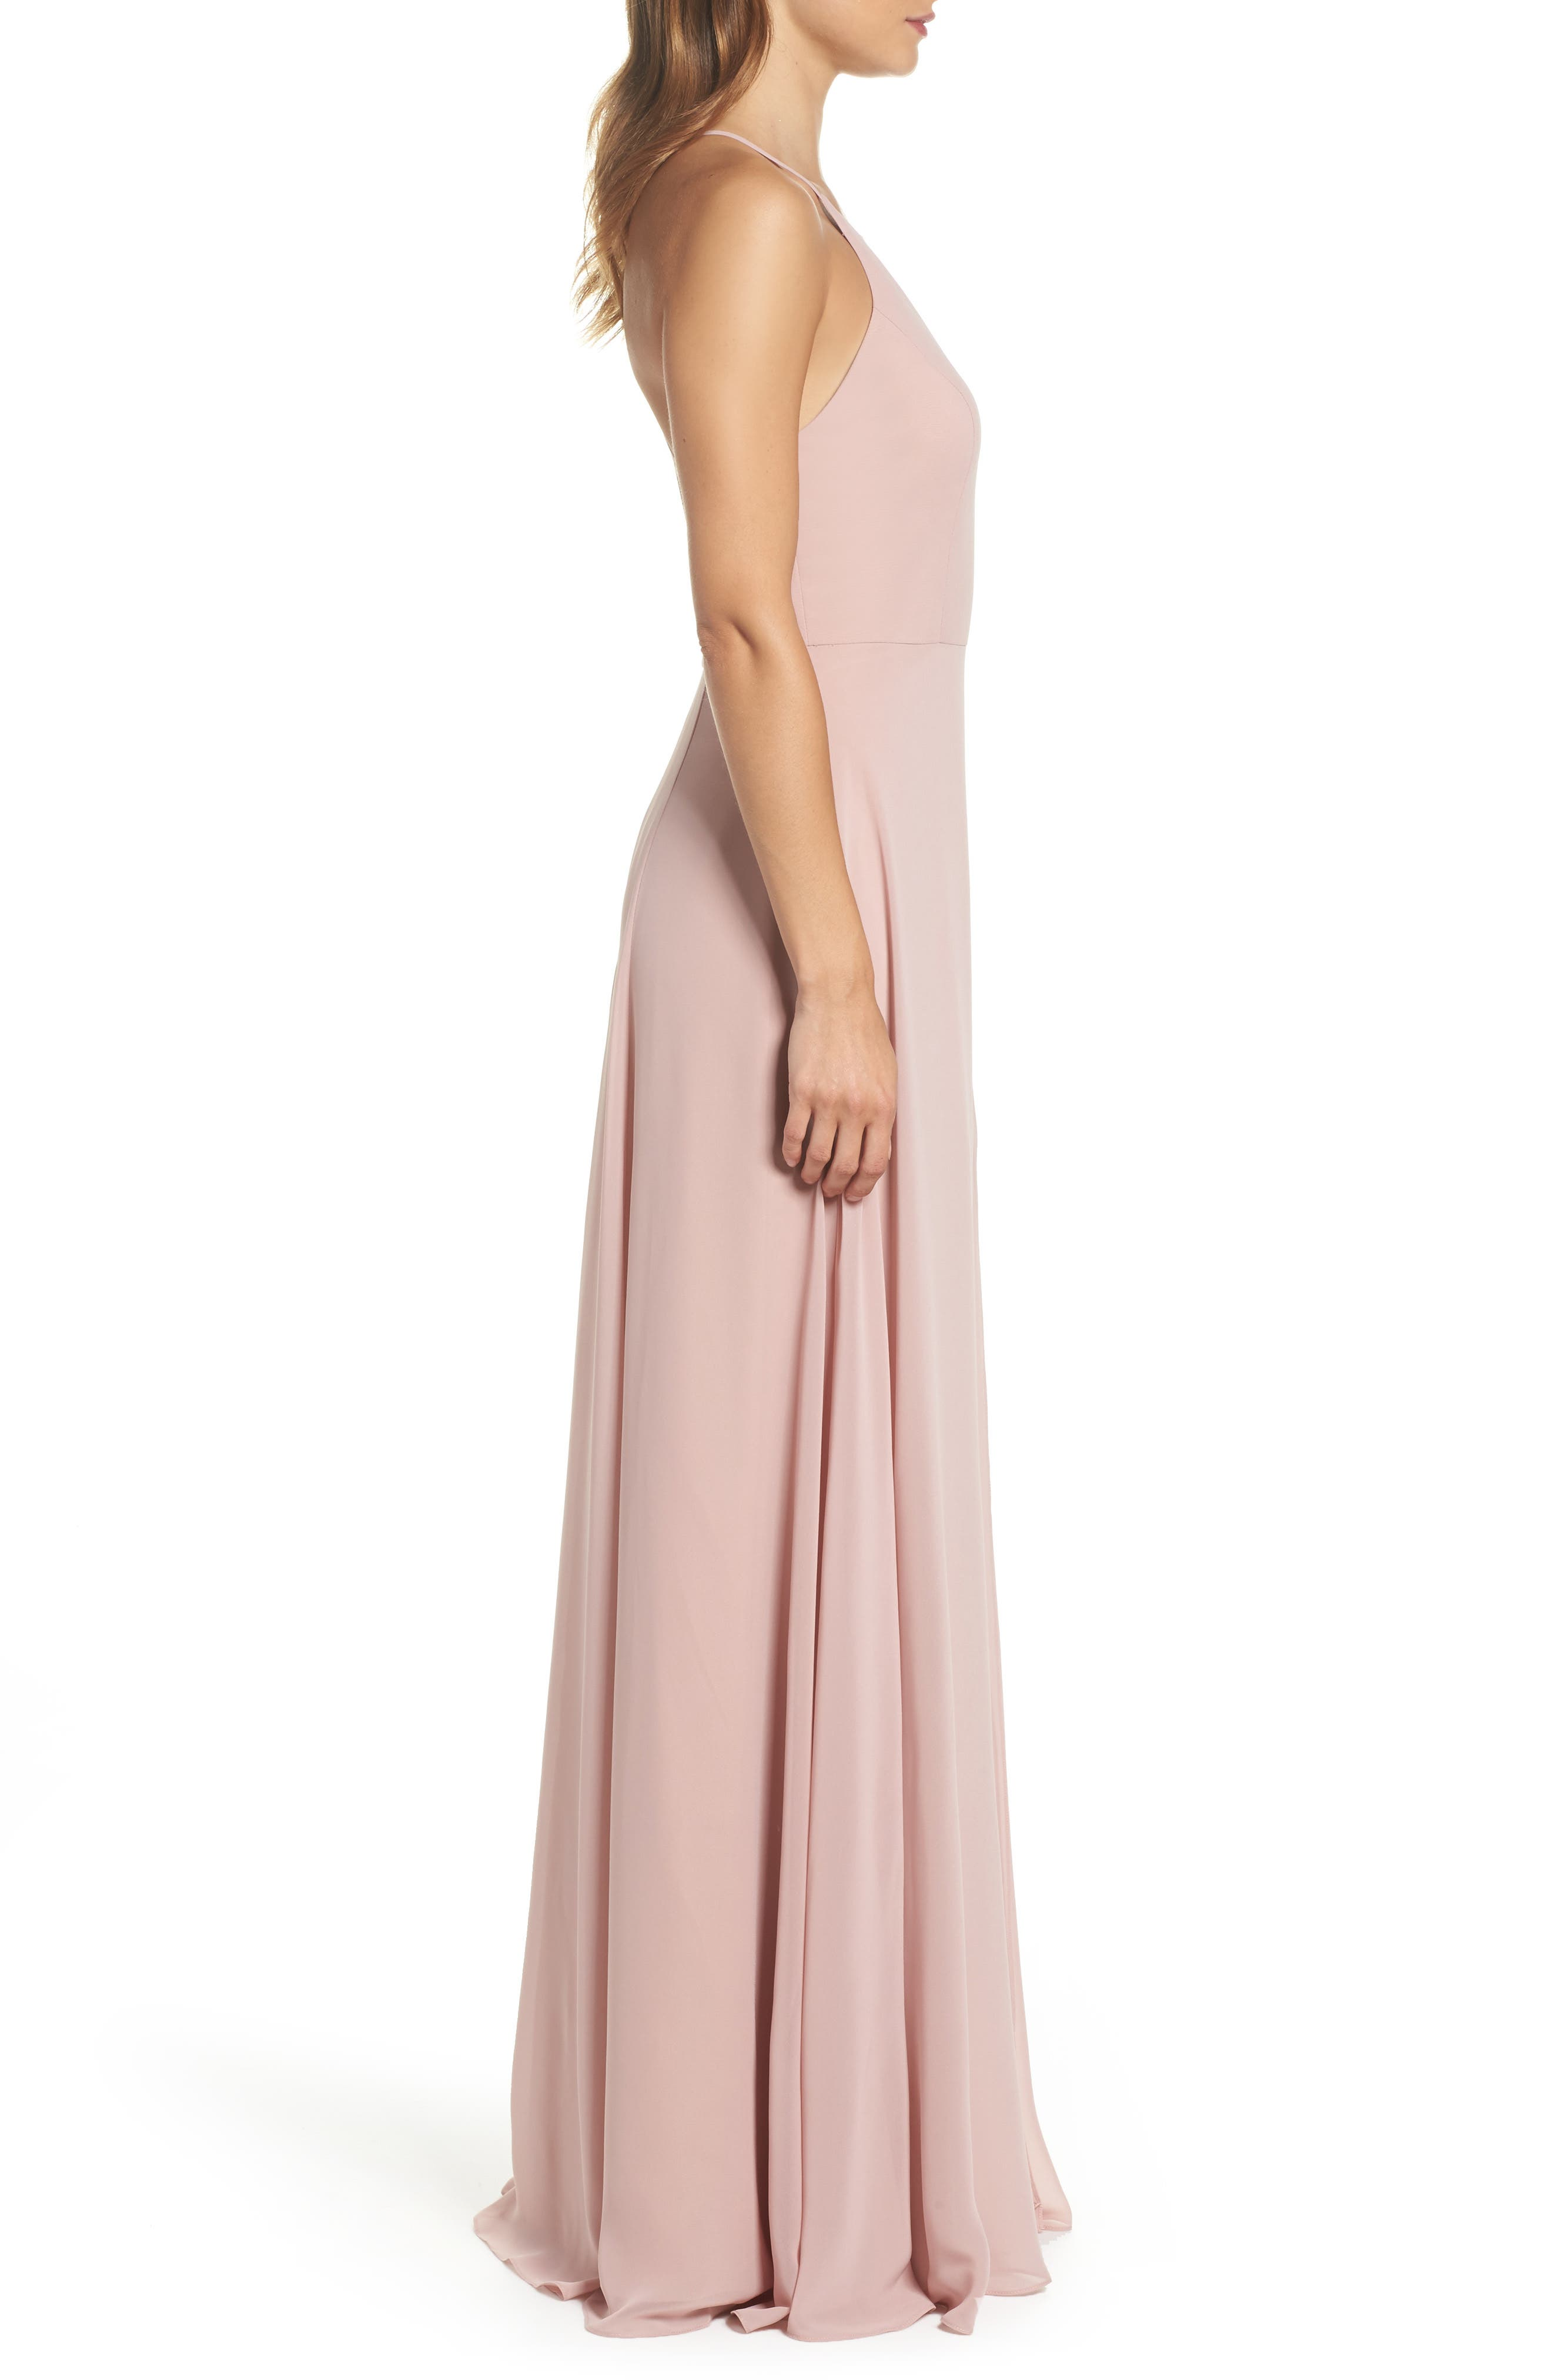 JENNY YOO, Kayla A-Line Halter Gown, Alternate thumbnail 4, color, WHIPPED APRICOT